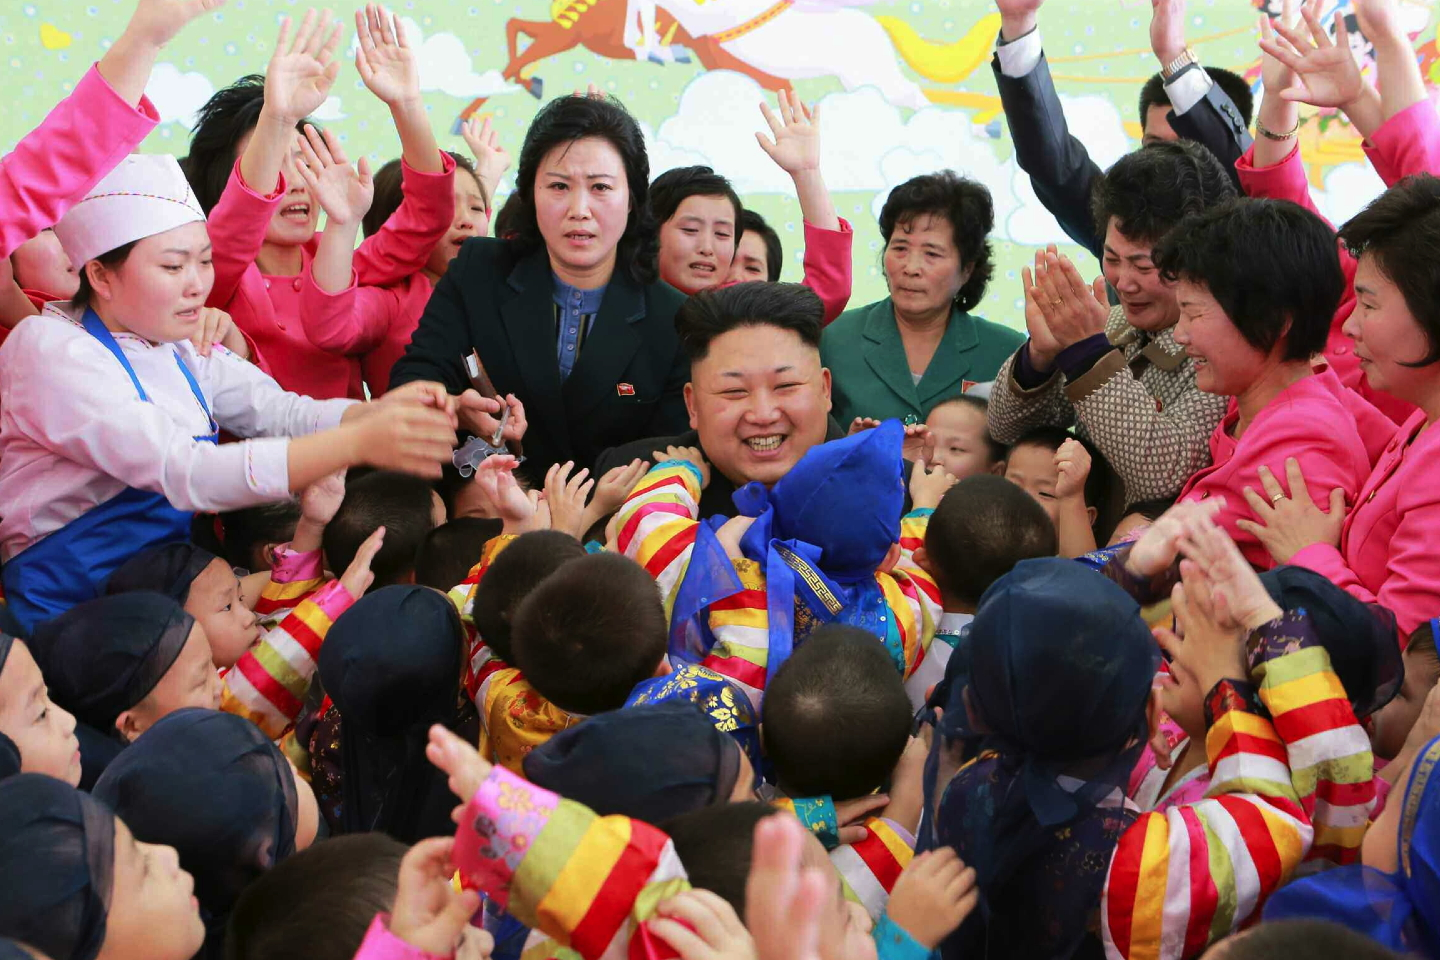 Kim Jong Un greets children residing at Pyongyang Orphanage and Baby Home after posing for commemorative photos with the children and staff on January 1, 2015 (Photo: Rodong Sinmun).